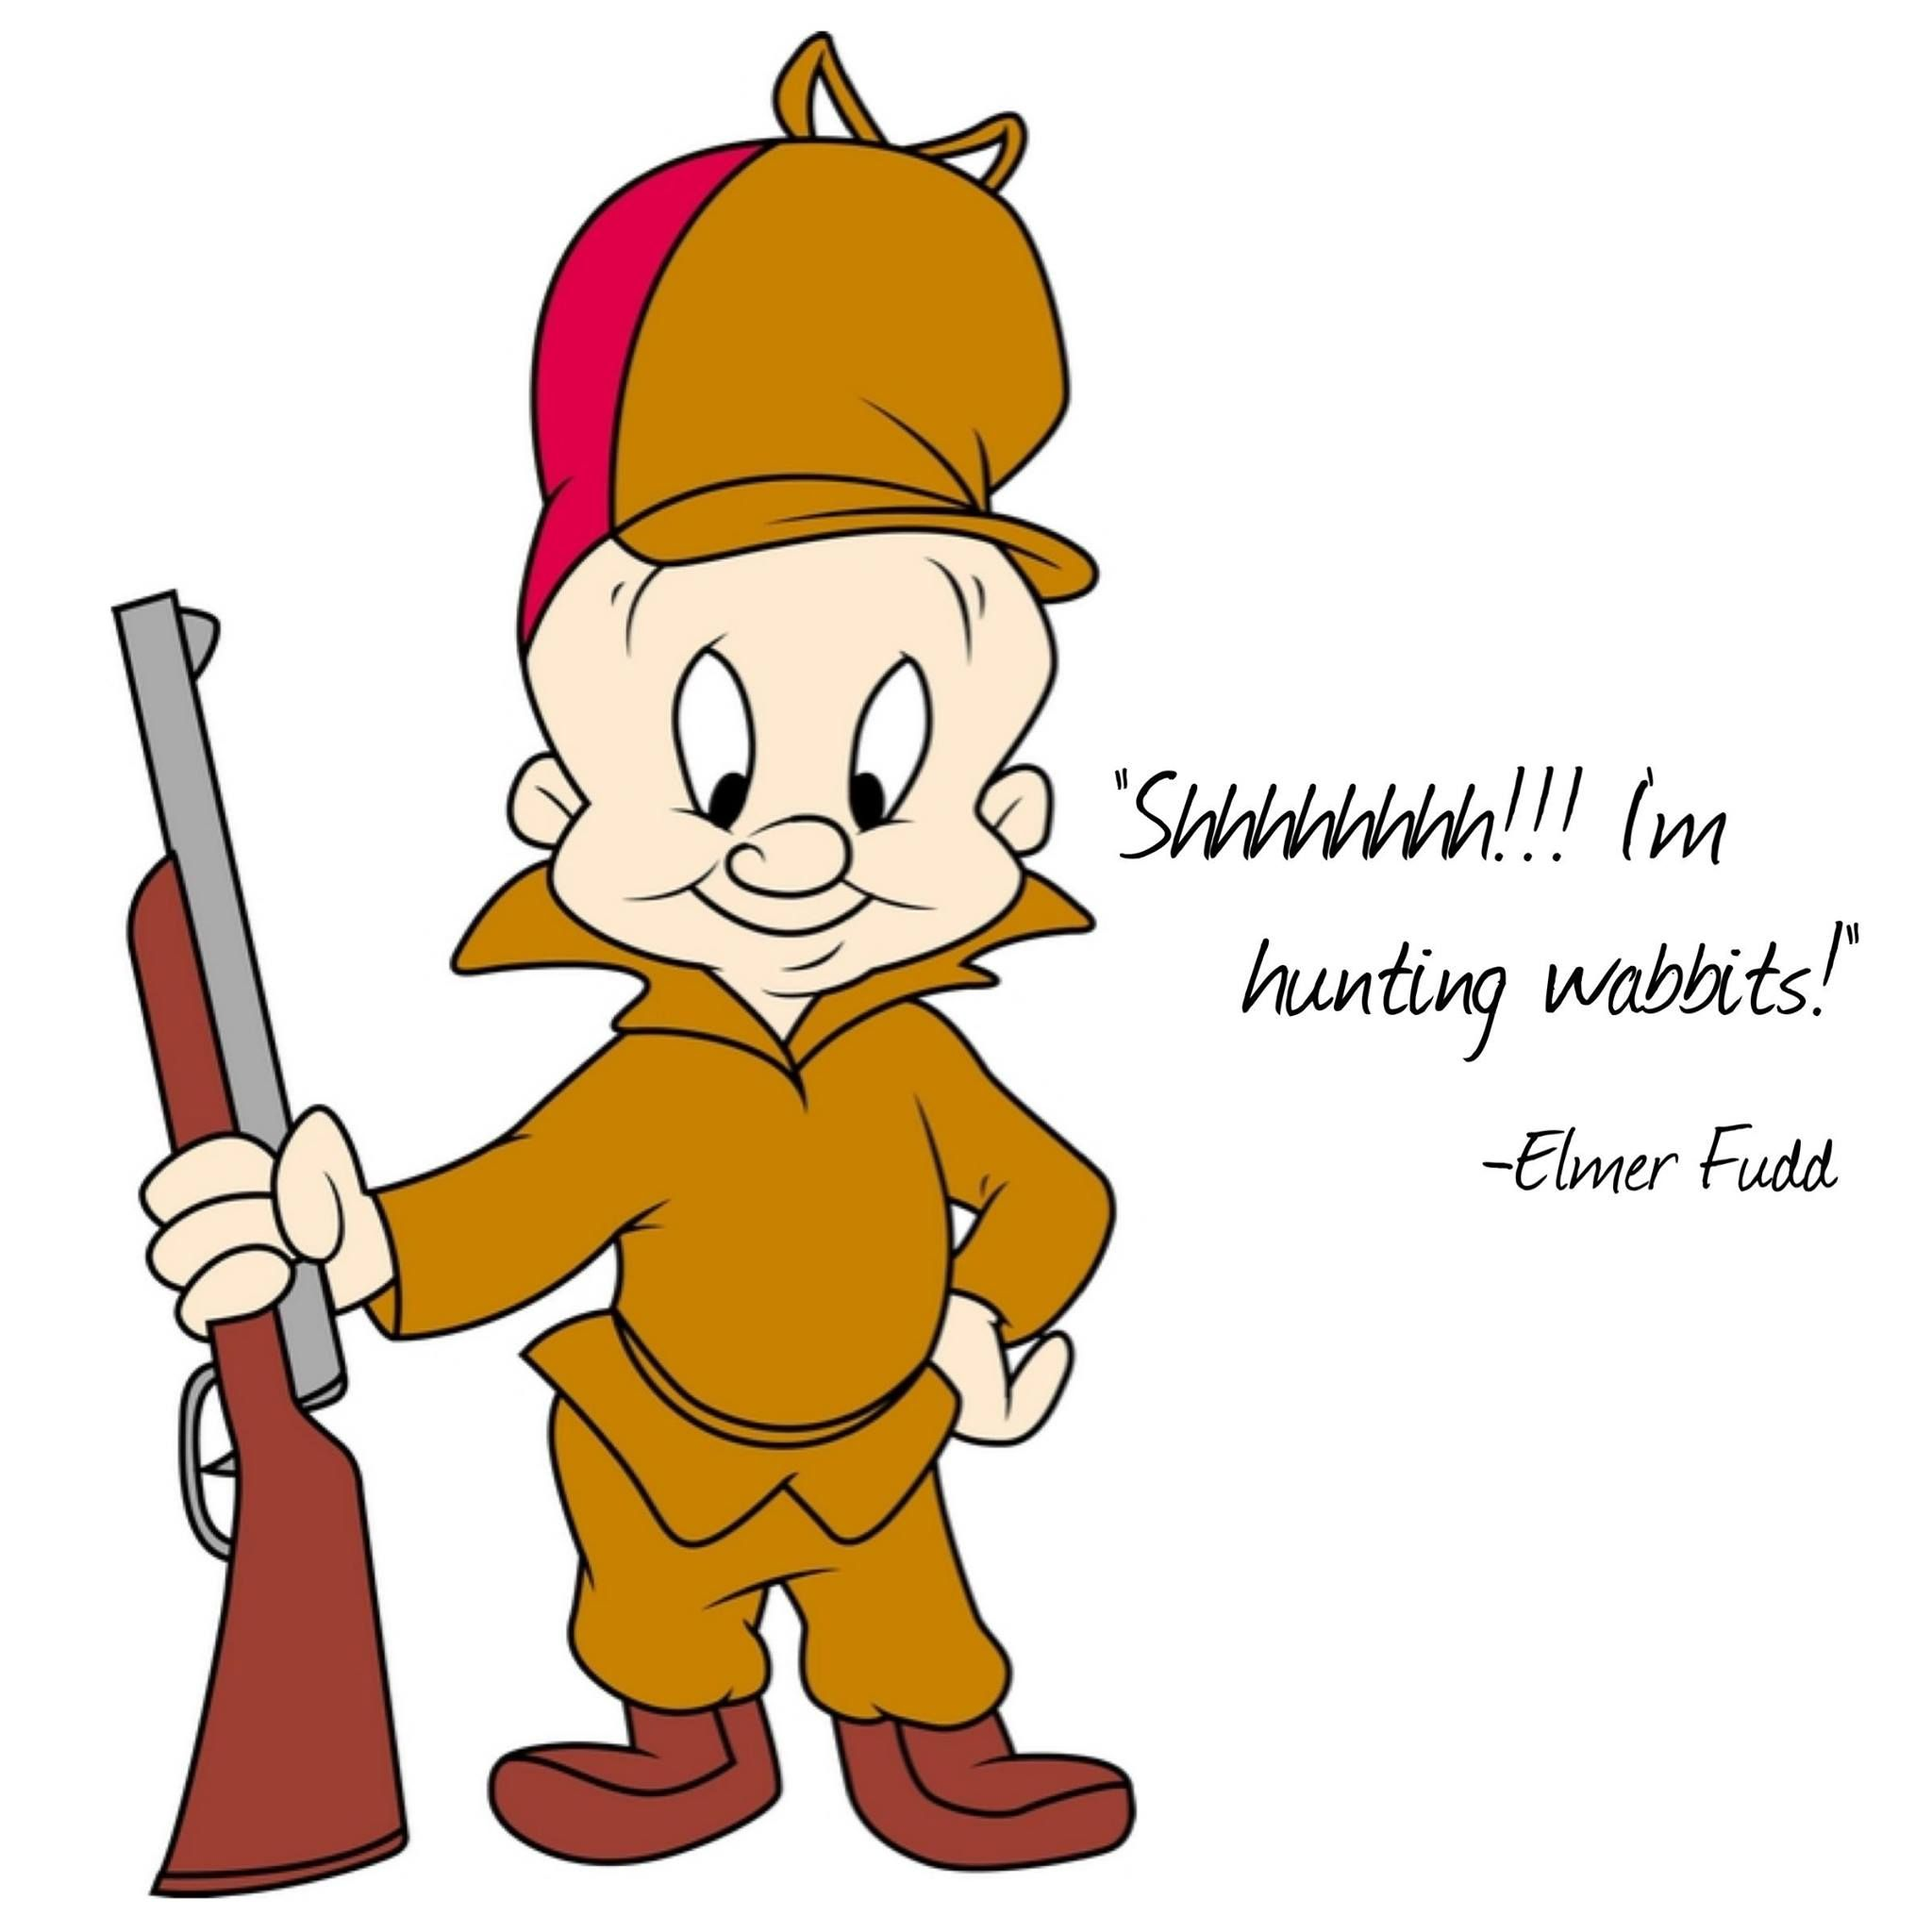 Cartoon Quotes: Looney Tunes Elmer Fudd Quote Made For My Website Wabbit